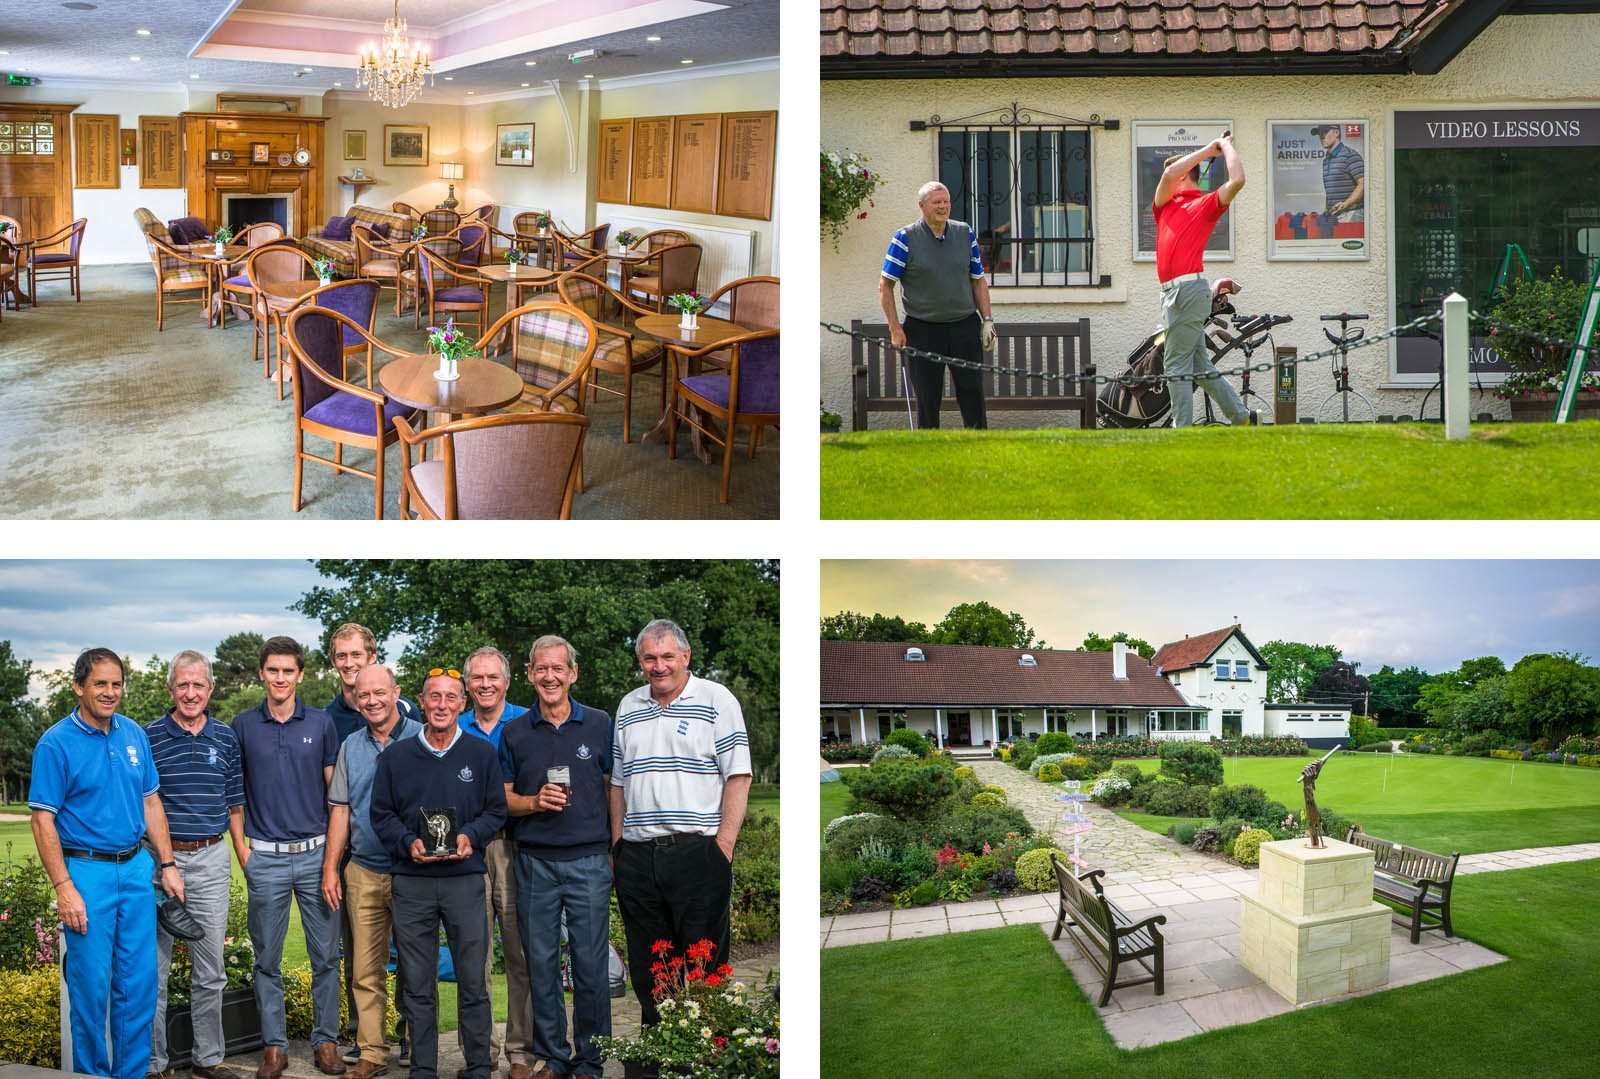 cafe table and chairs, golfer swinging, group of golfers, front of club house